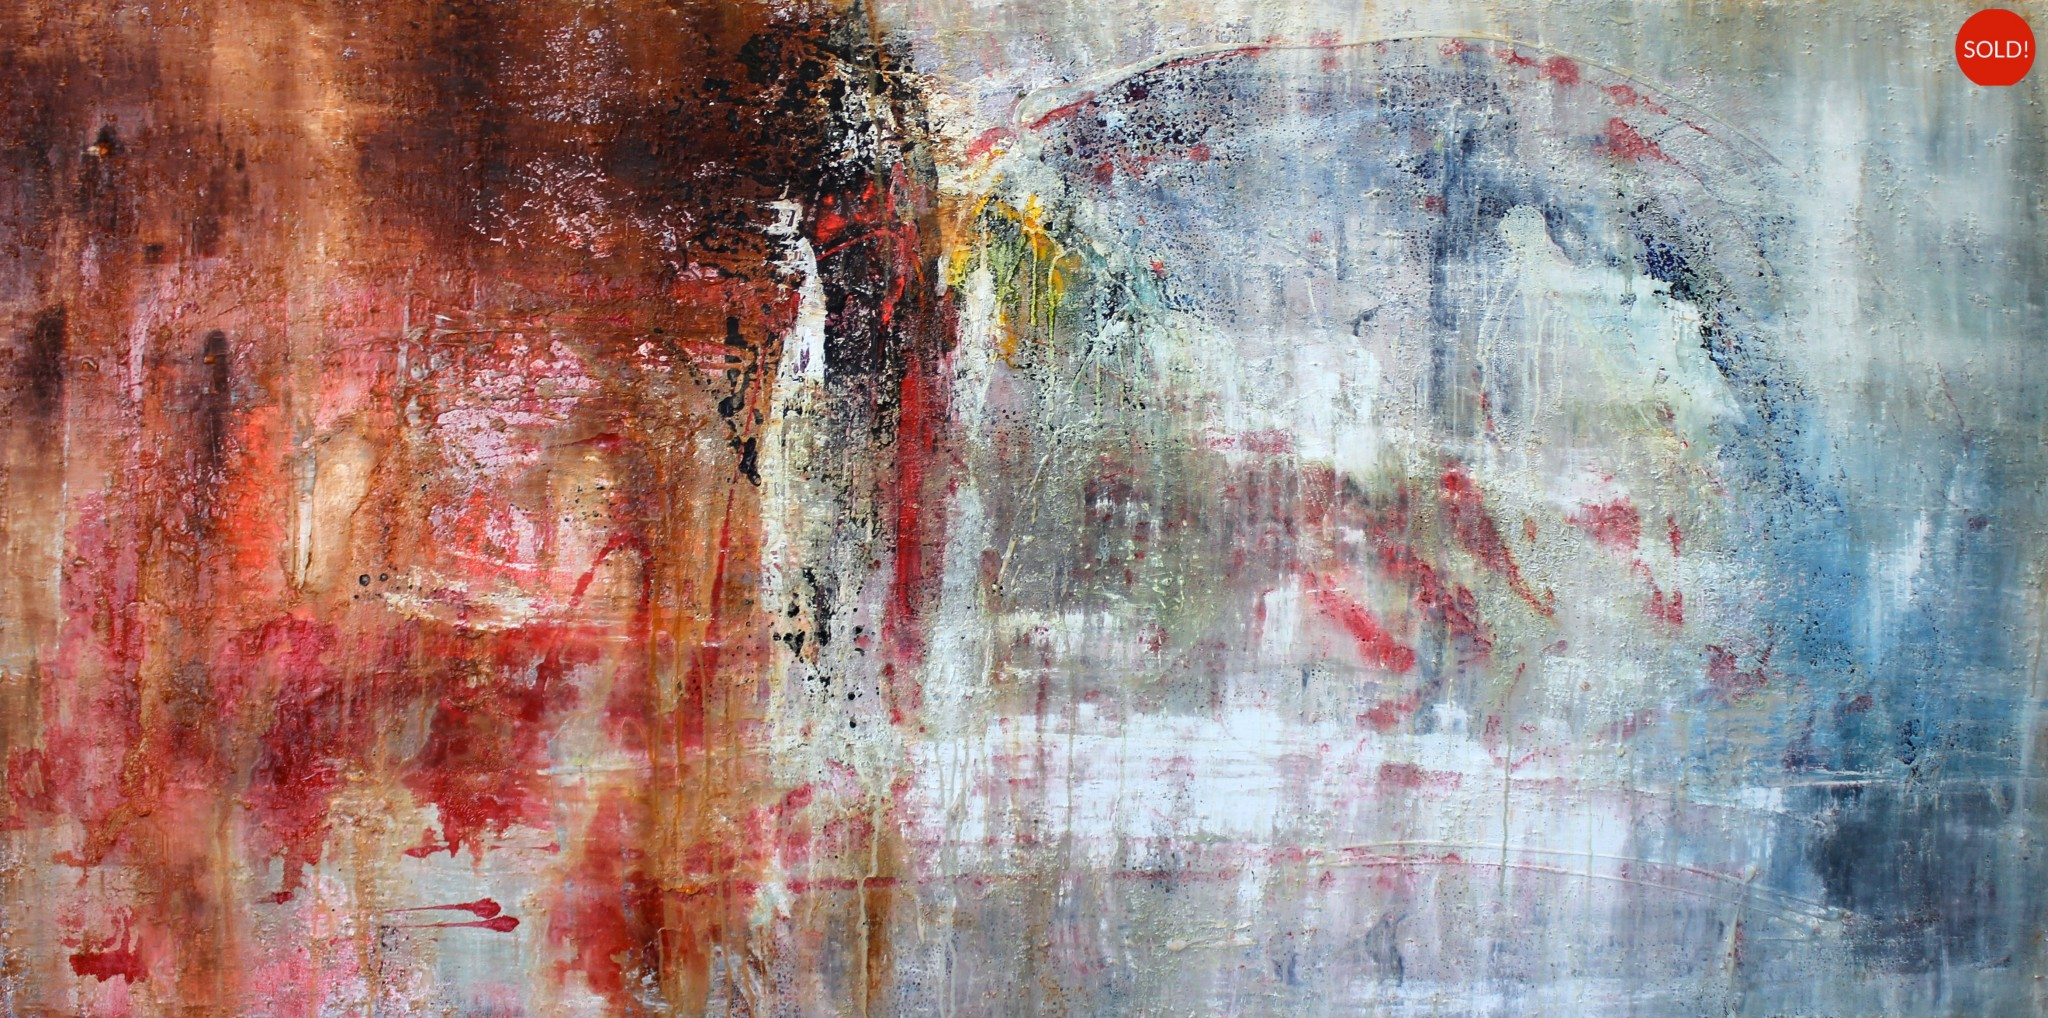 Elements_1_SOLD